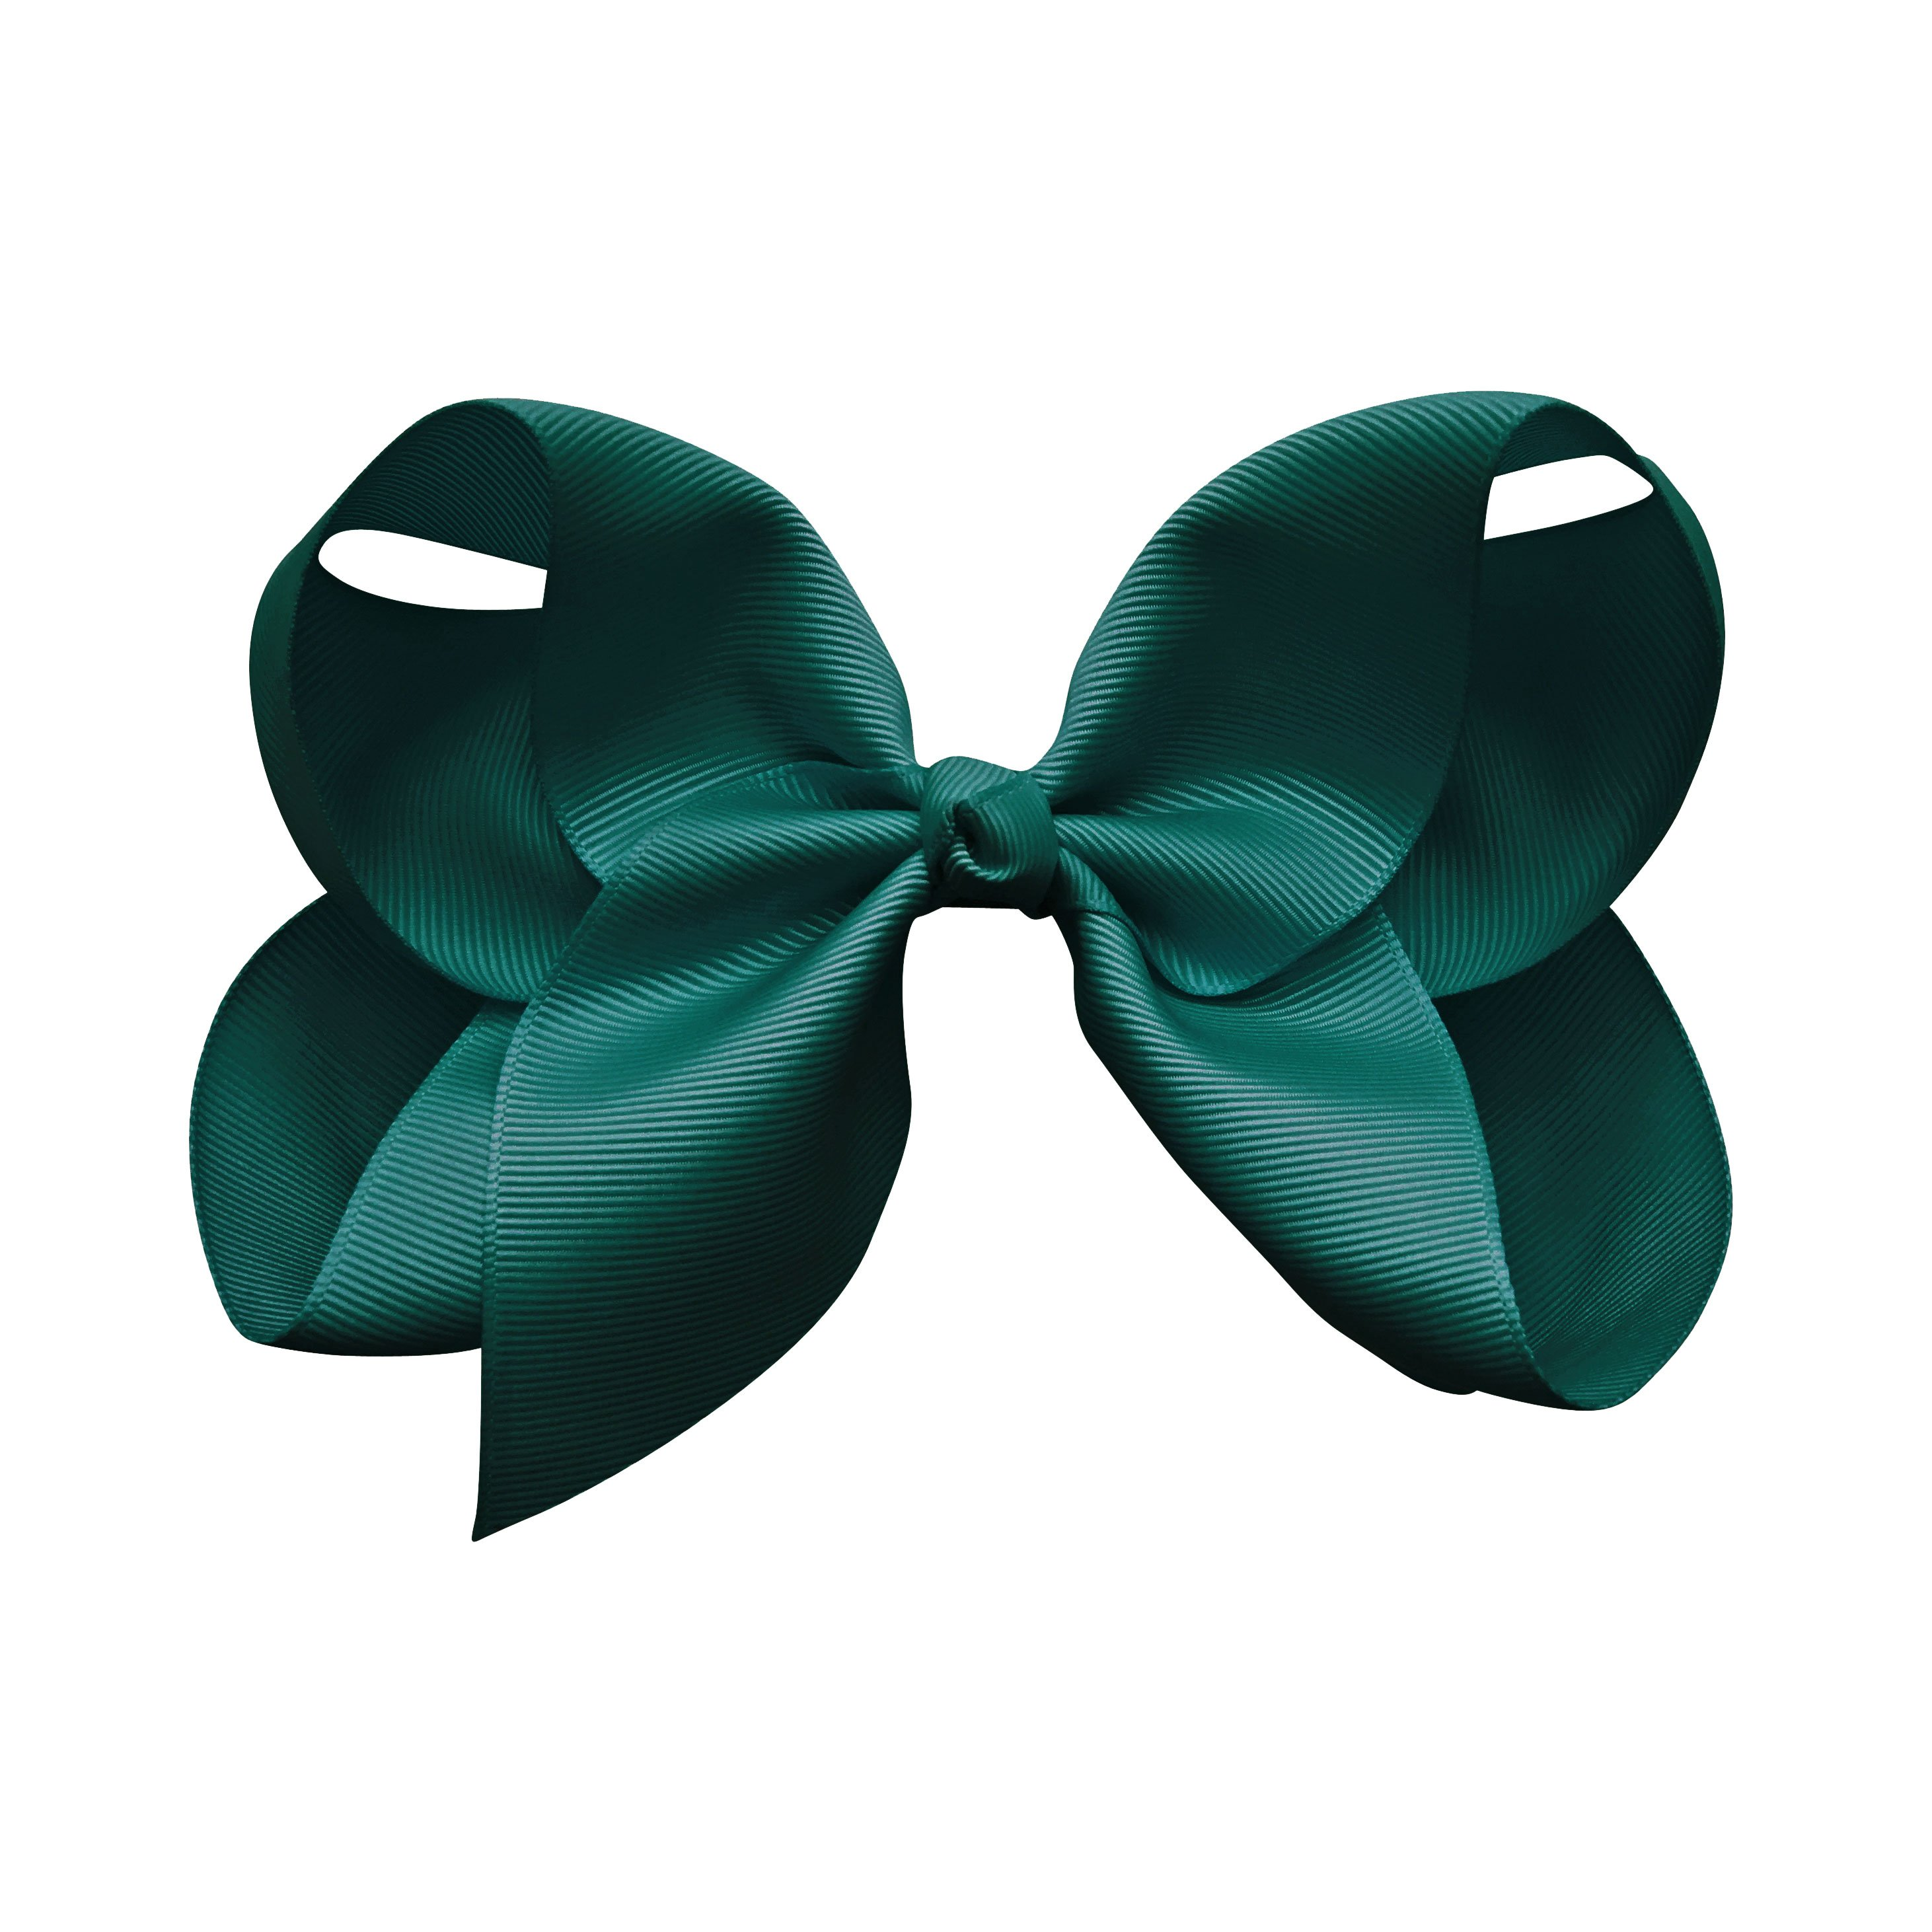 Image of Jumbo Boutique Bow - alligator clip - teal